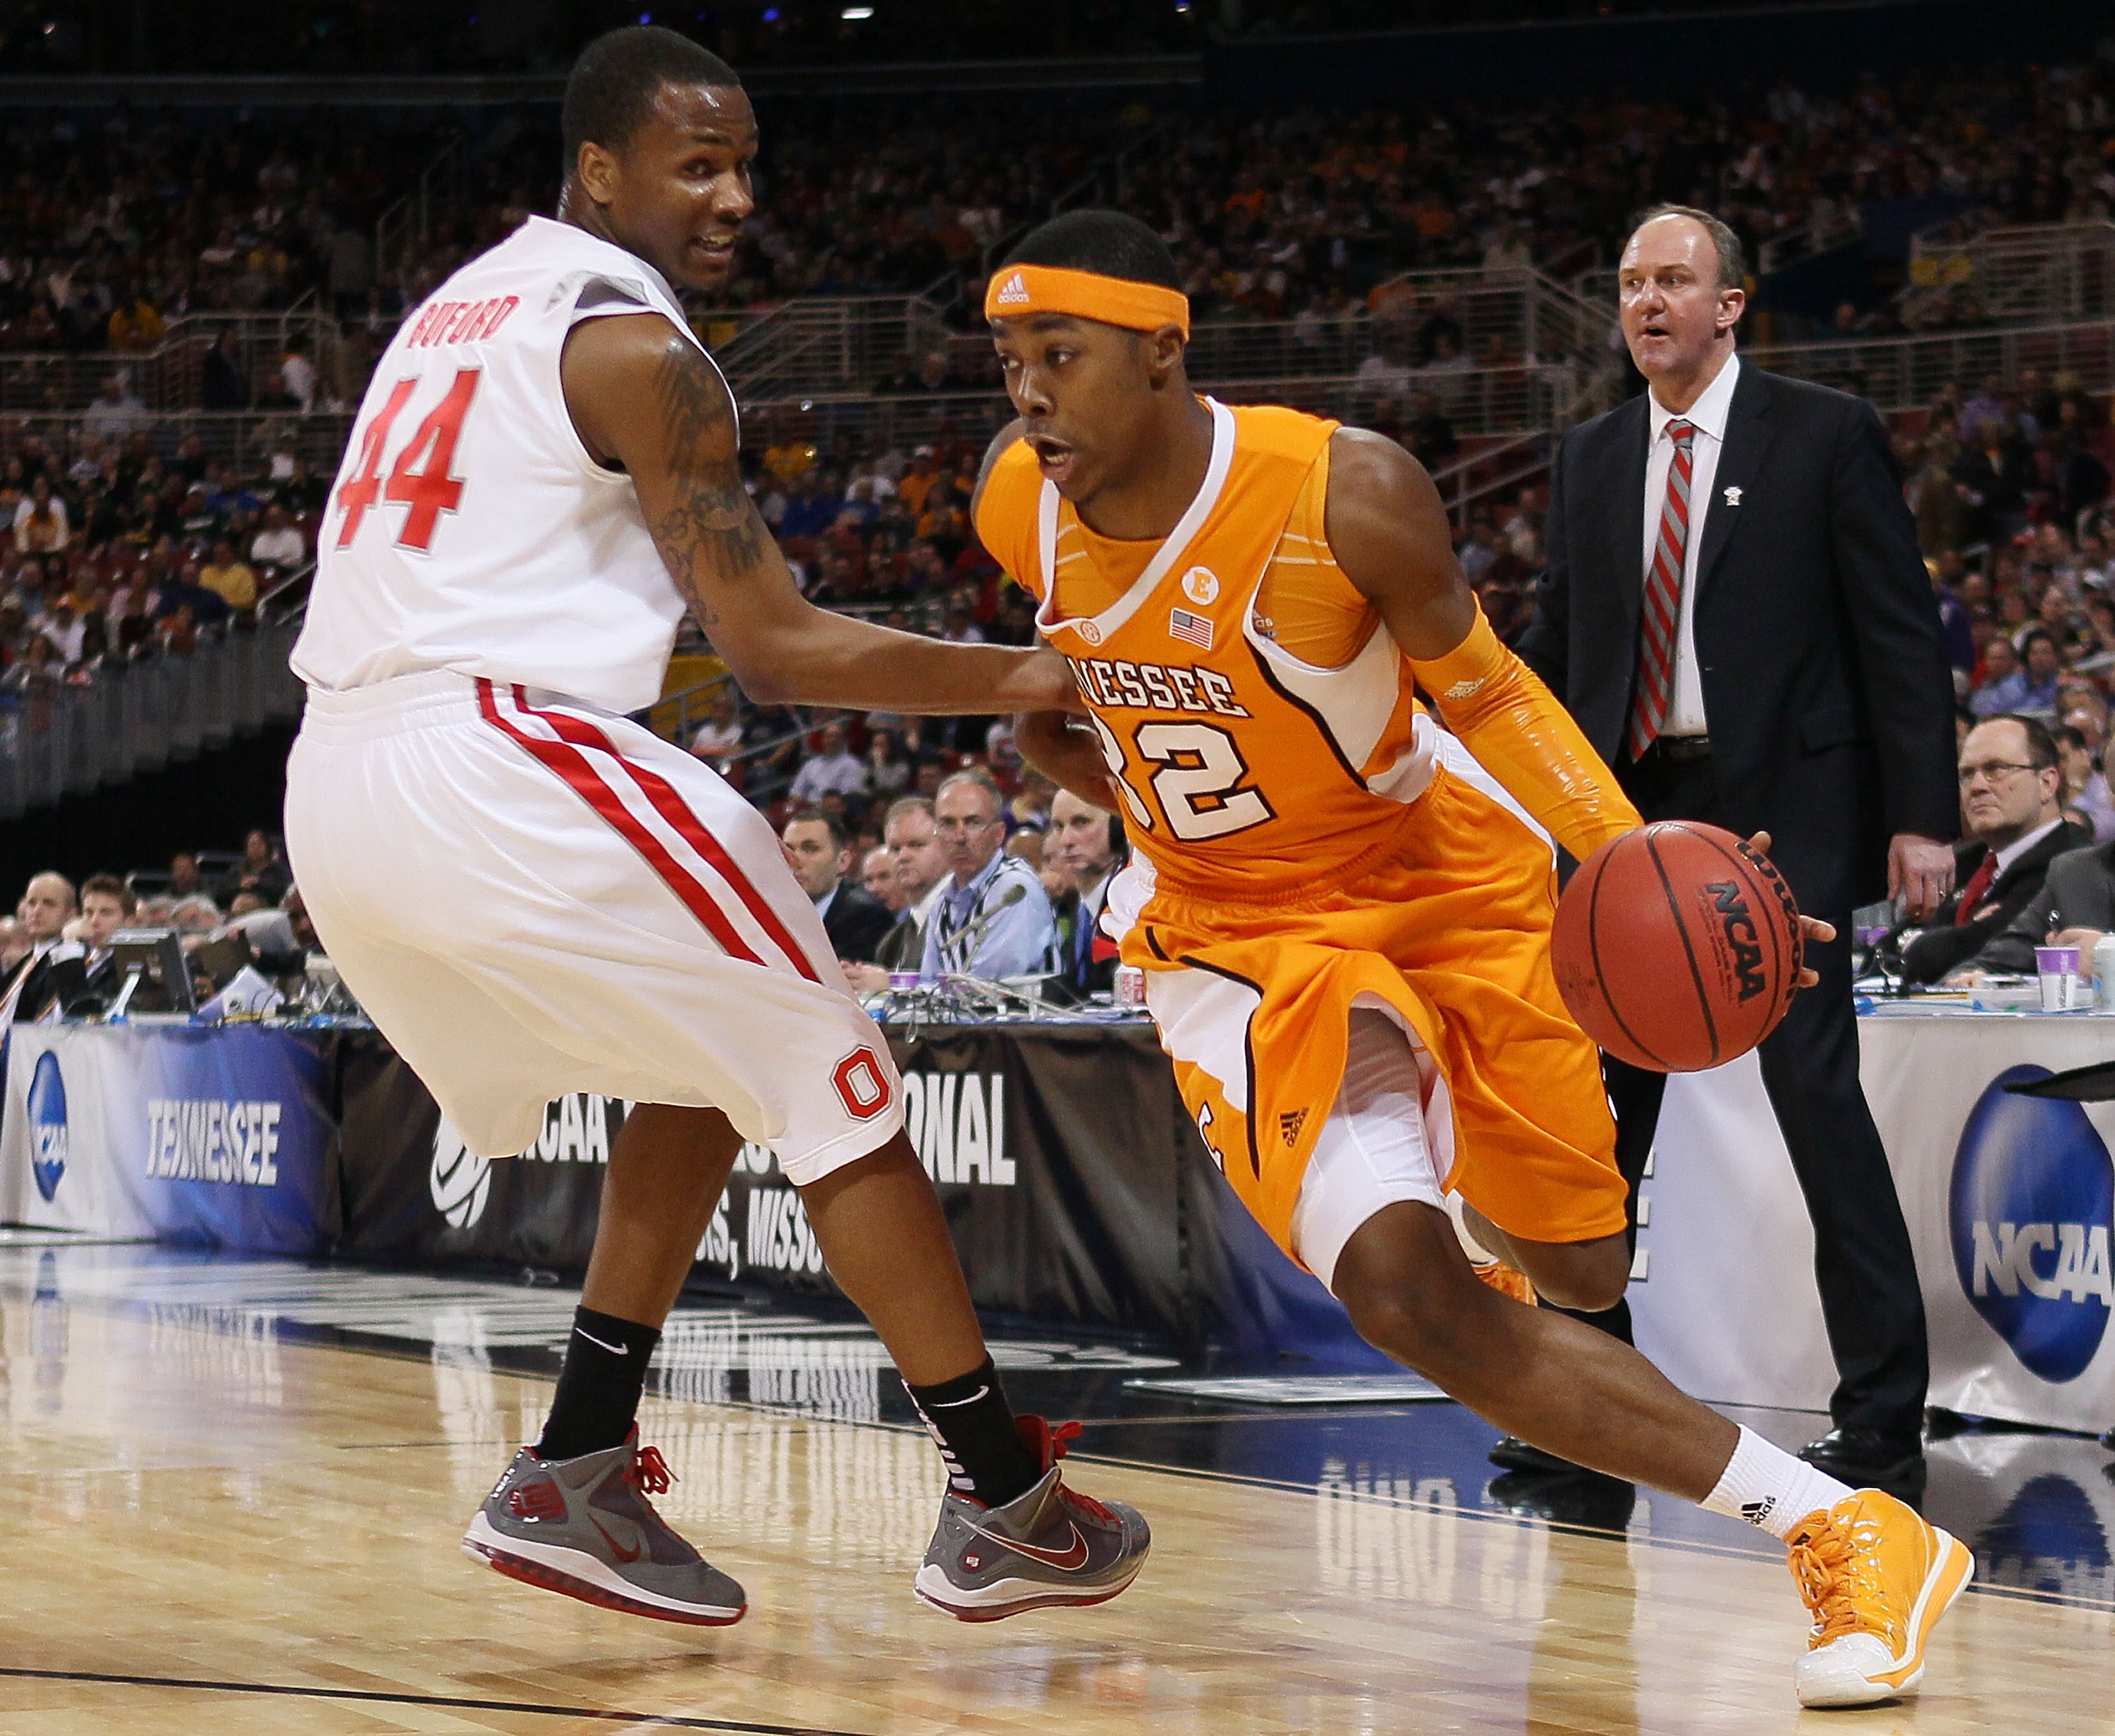 ST. LOUIS - MARCH 26:  Scotty Hopson #32 of the Tennessee Volunteers heads for the basket as William Buford #44 of the Ohio State Buckeyes defends during the midwest regional semifinal of the 2010 NCAA men's basketball tournament at the Edward Jones Dome